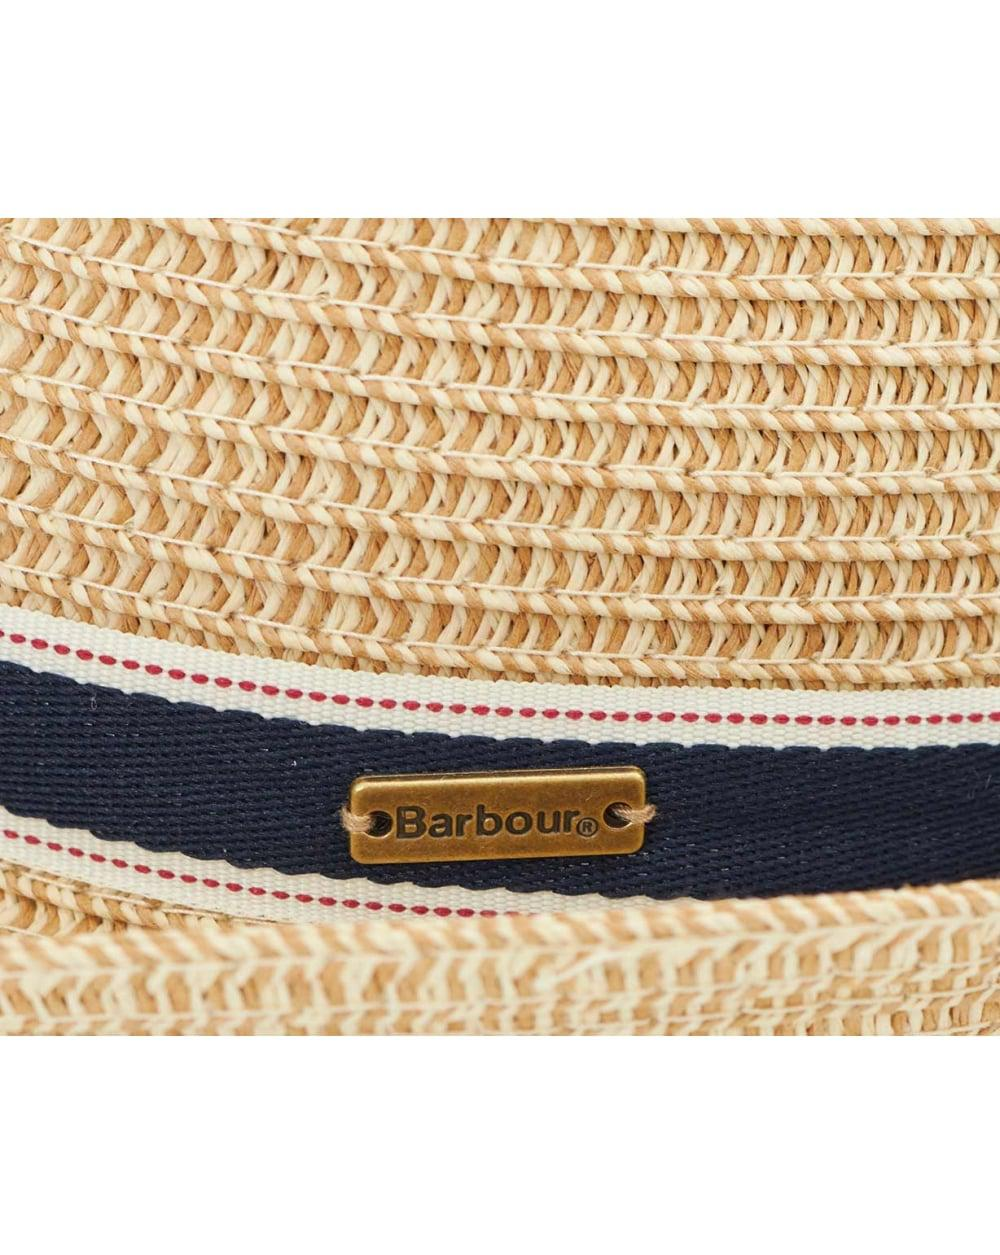 27d7ab7dcb8eb Lyst - Barbour Lagoon Trilby Hat in Natural